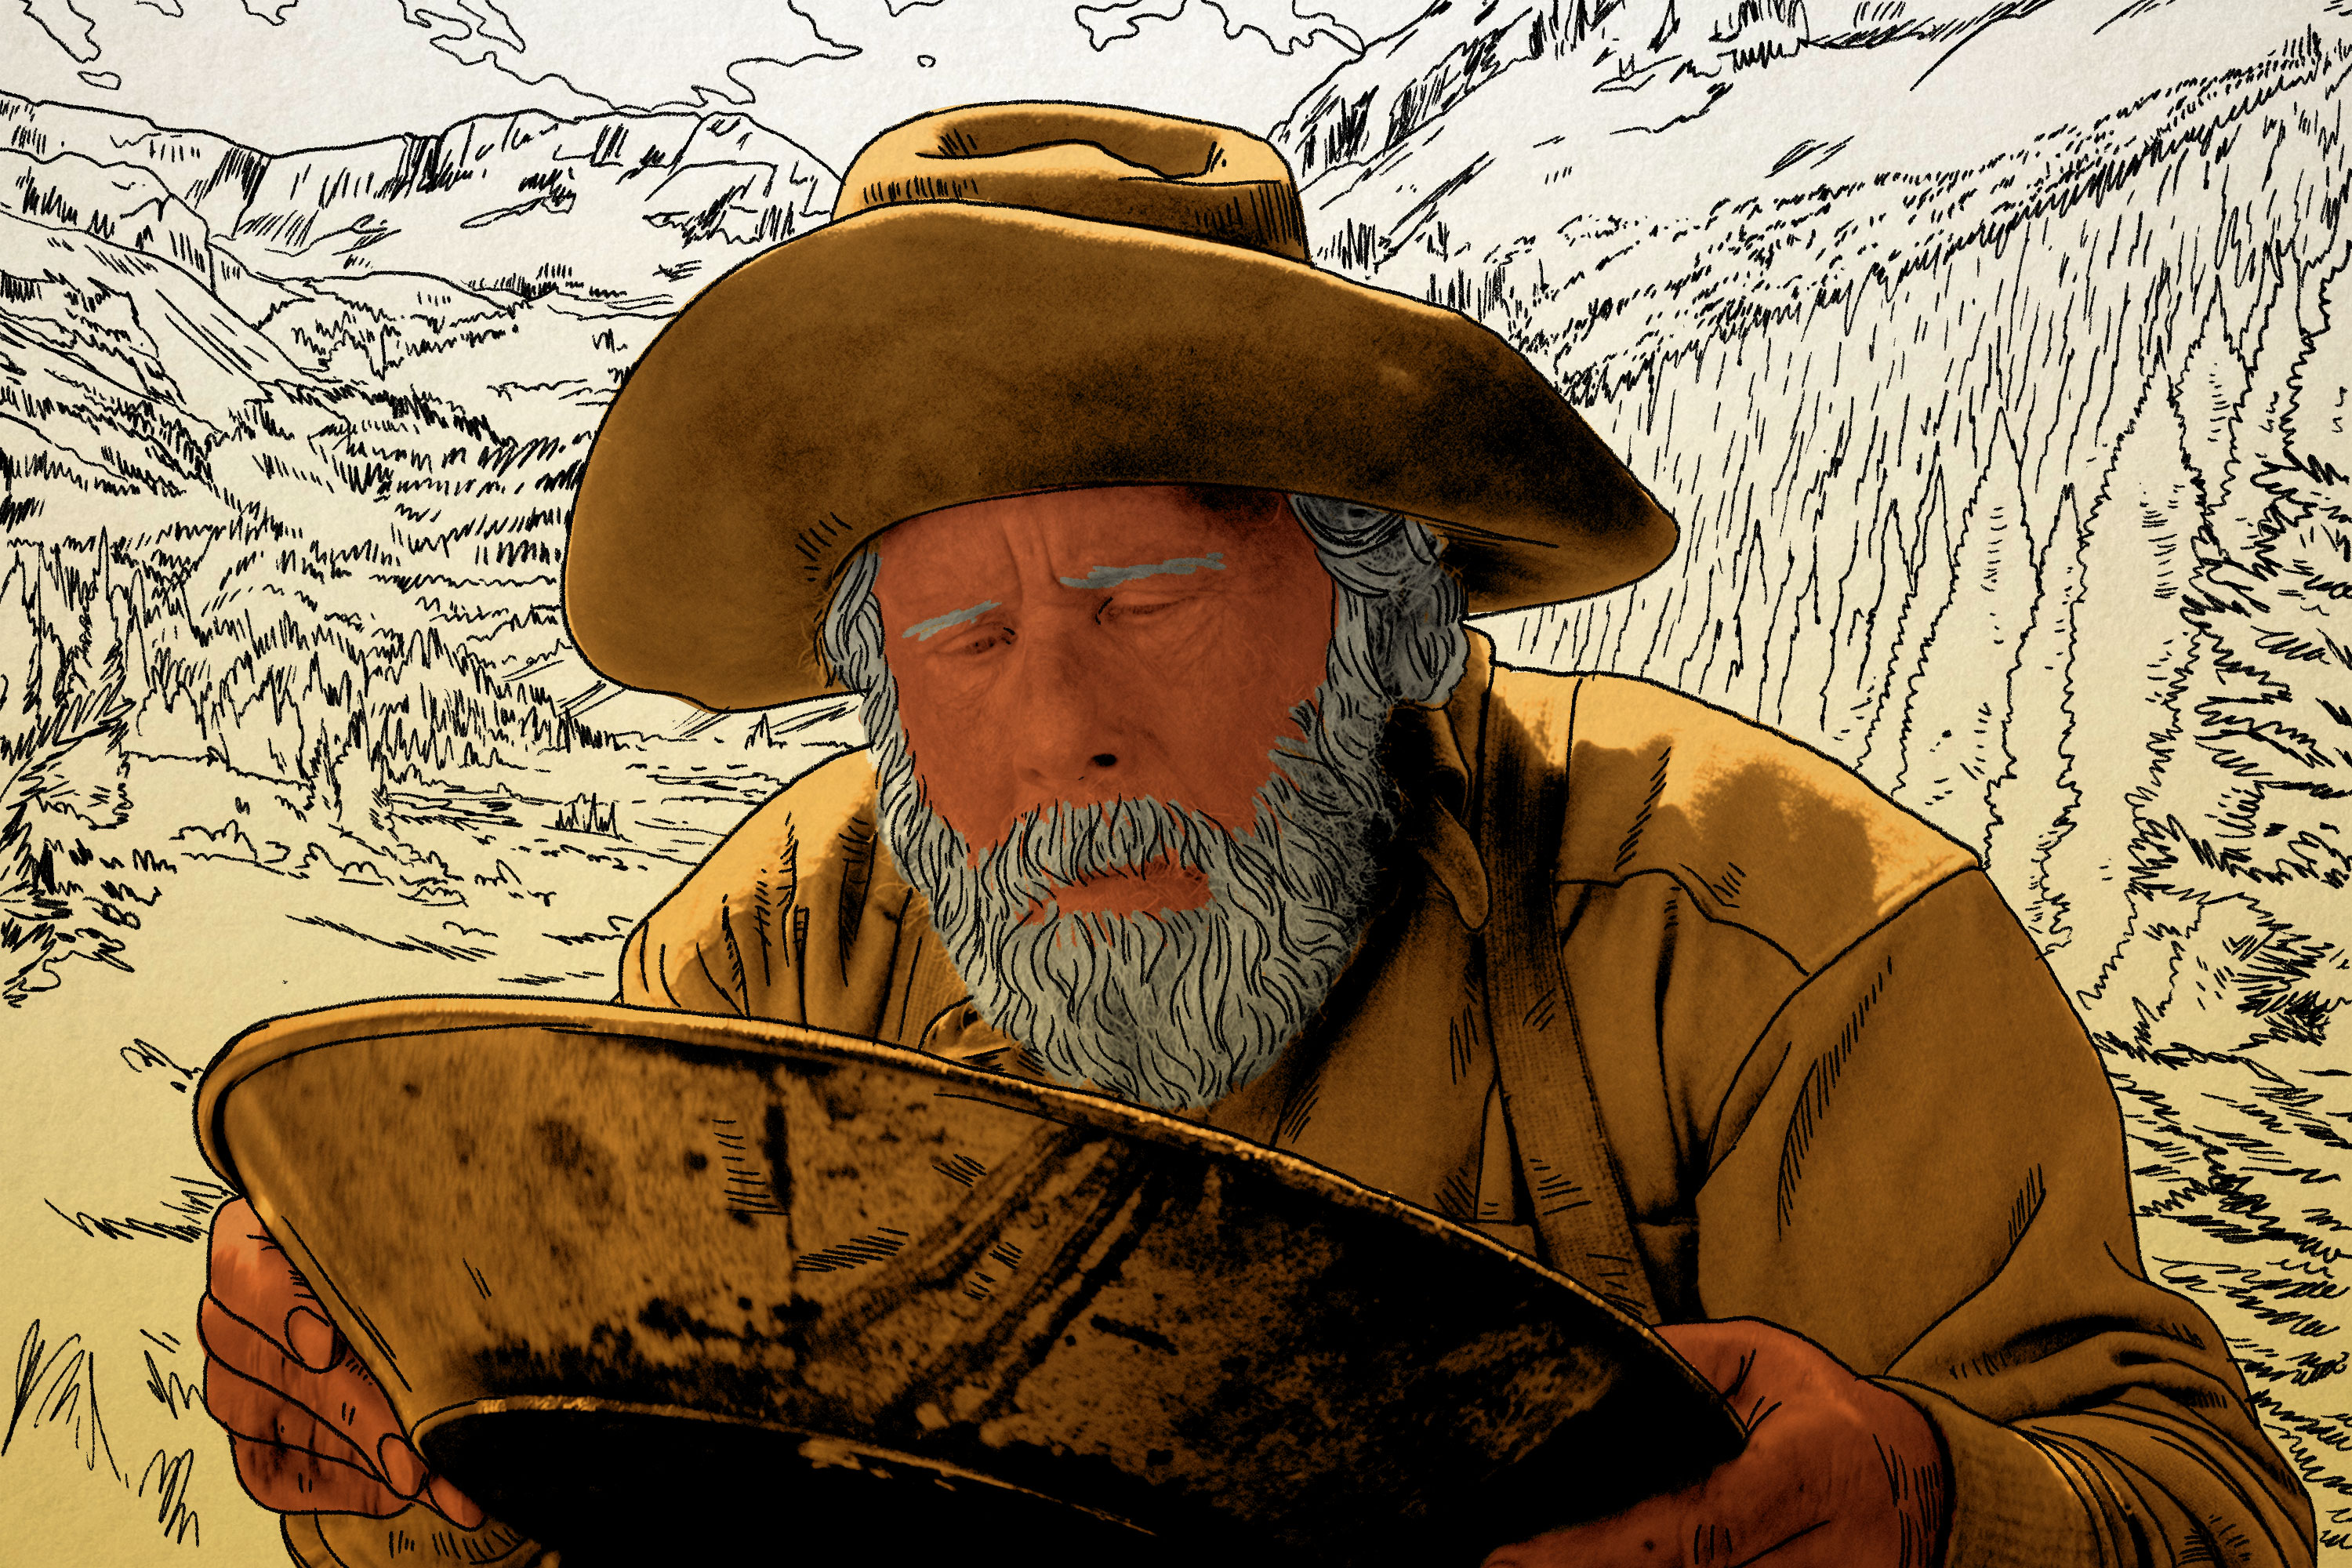 Tom Waits wearing a brown hat and looking down into a gold pan in 'The Ballad of Buster Scruggs'